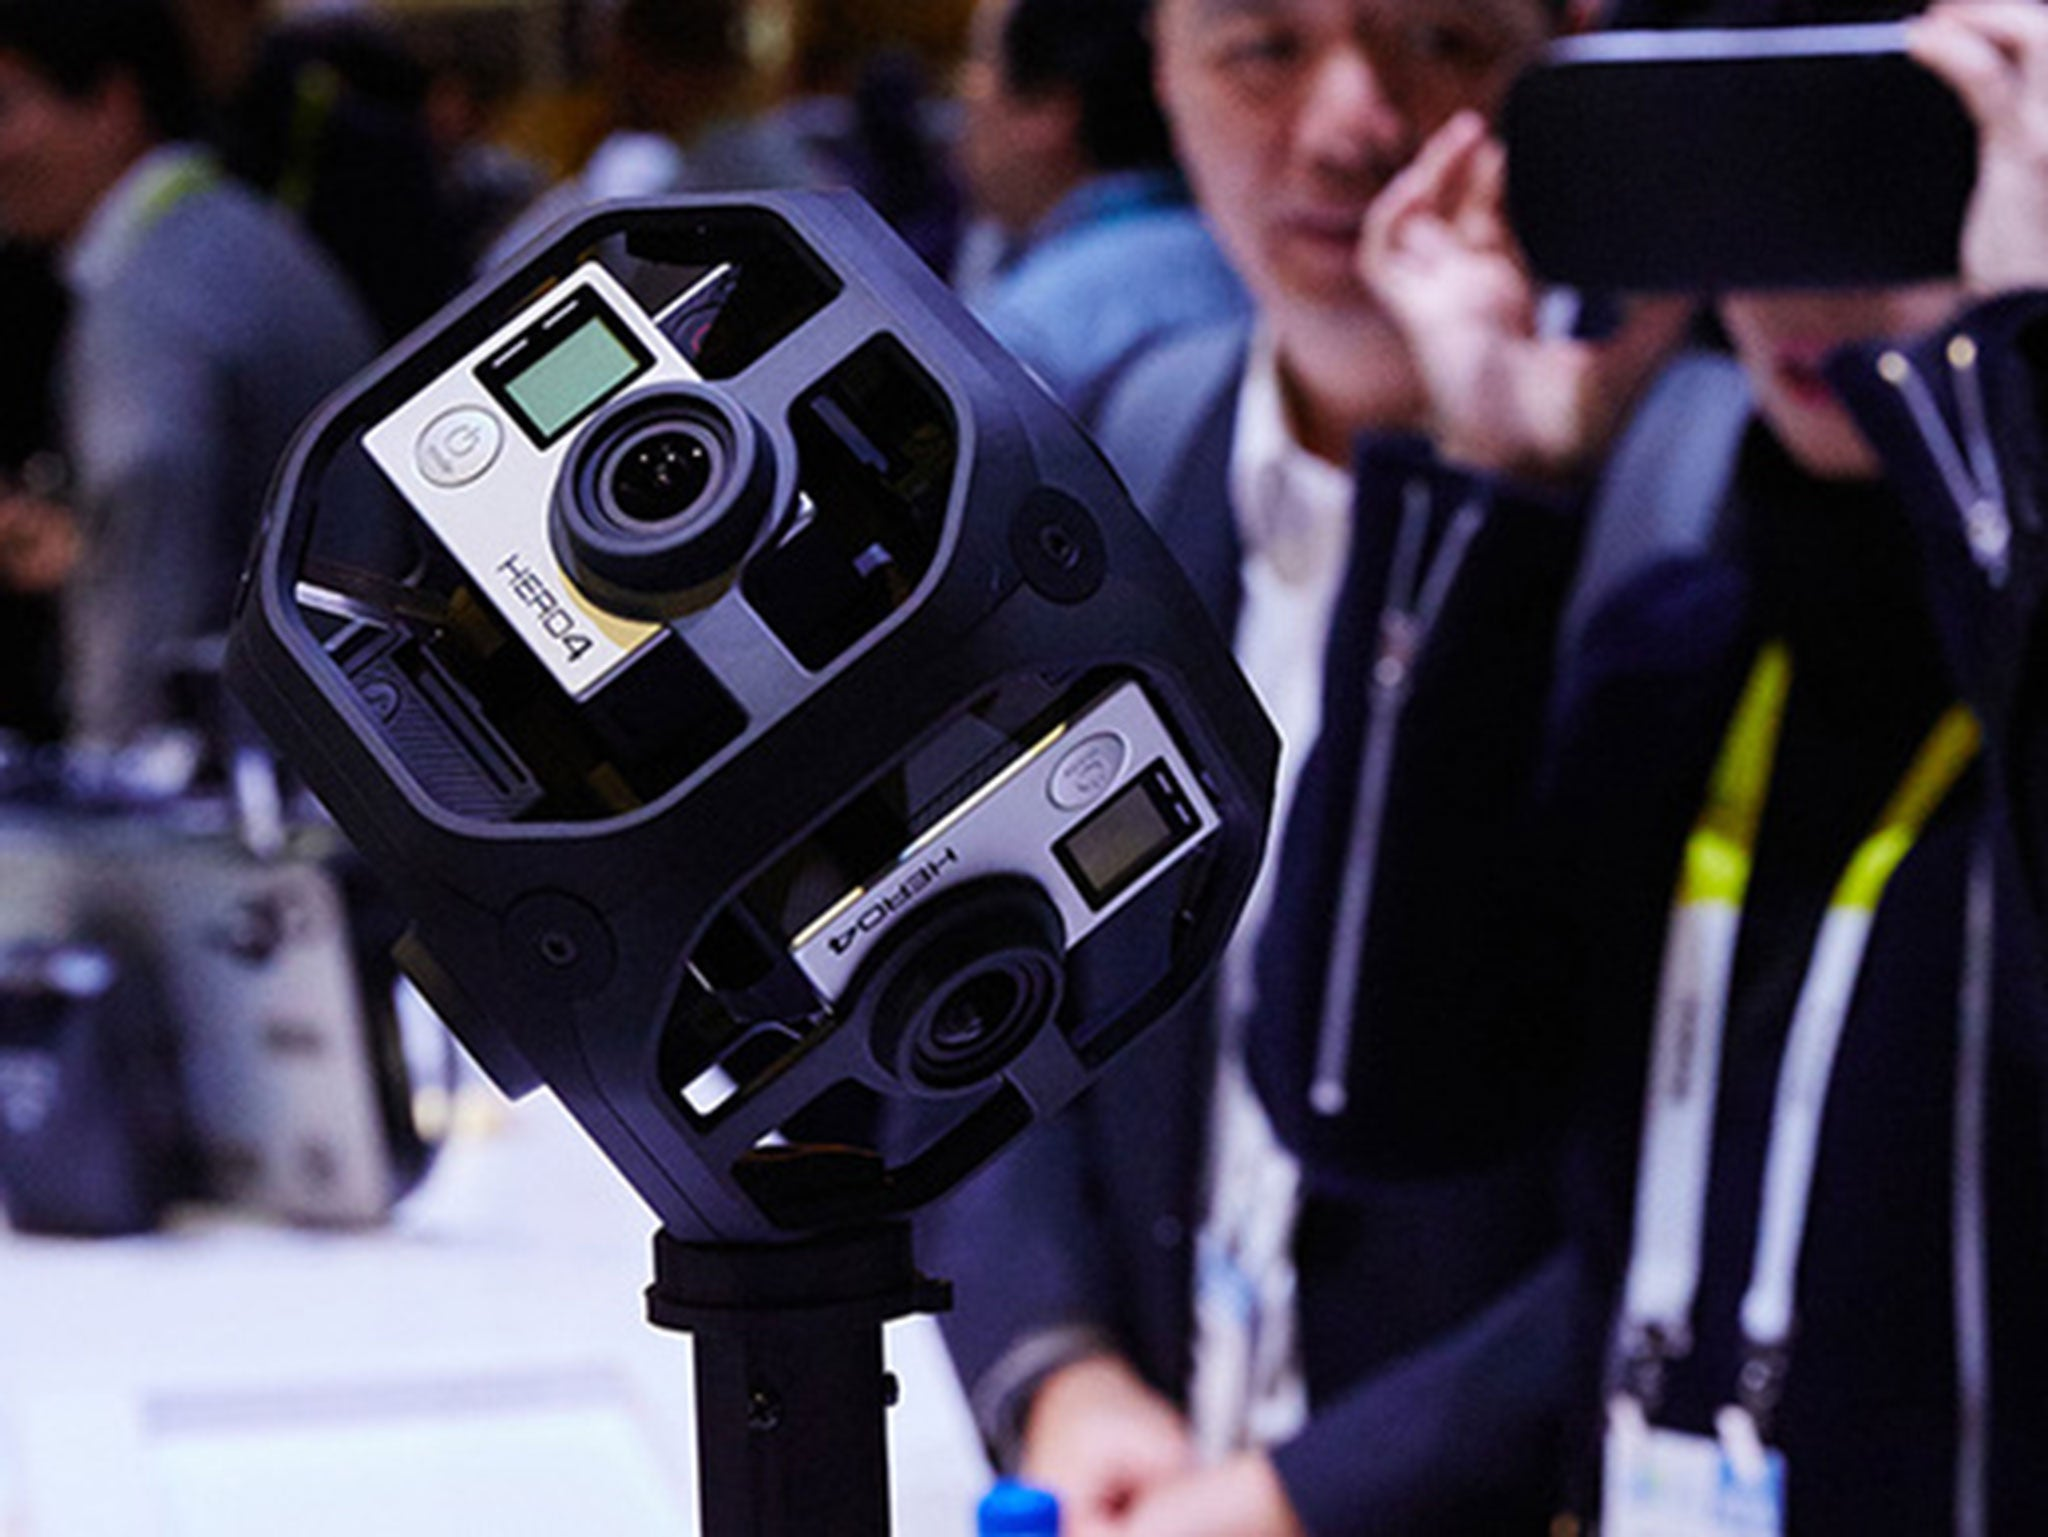 GoPro unveils new VR video platform and pricing for 360-degree Omni camera rig